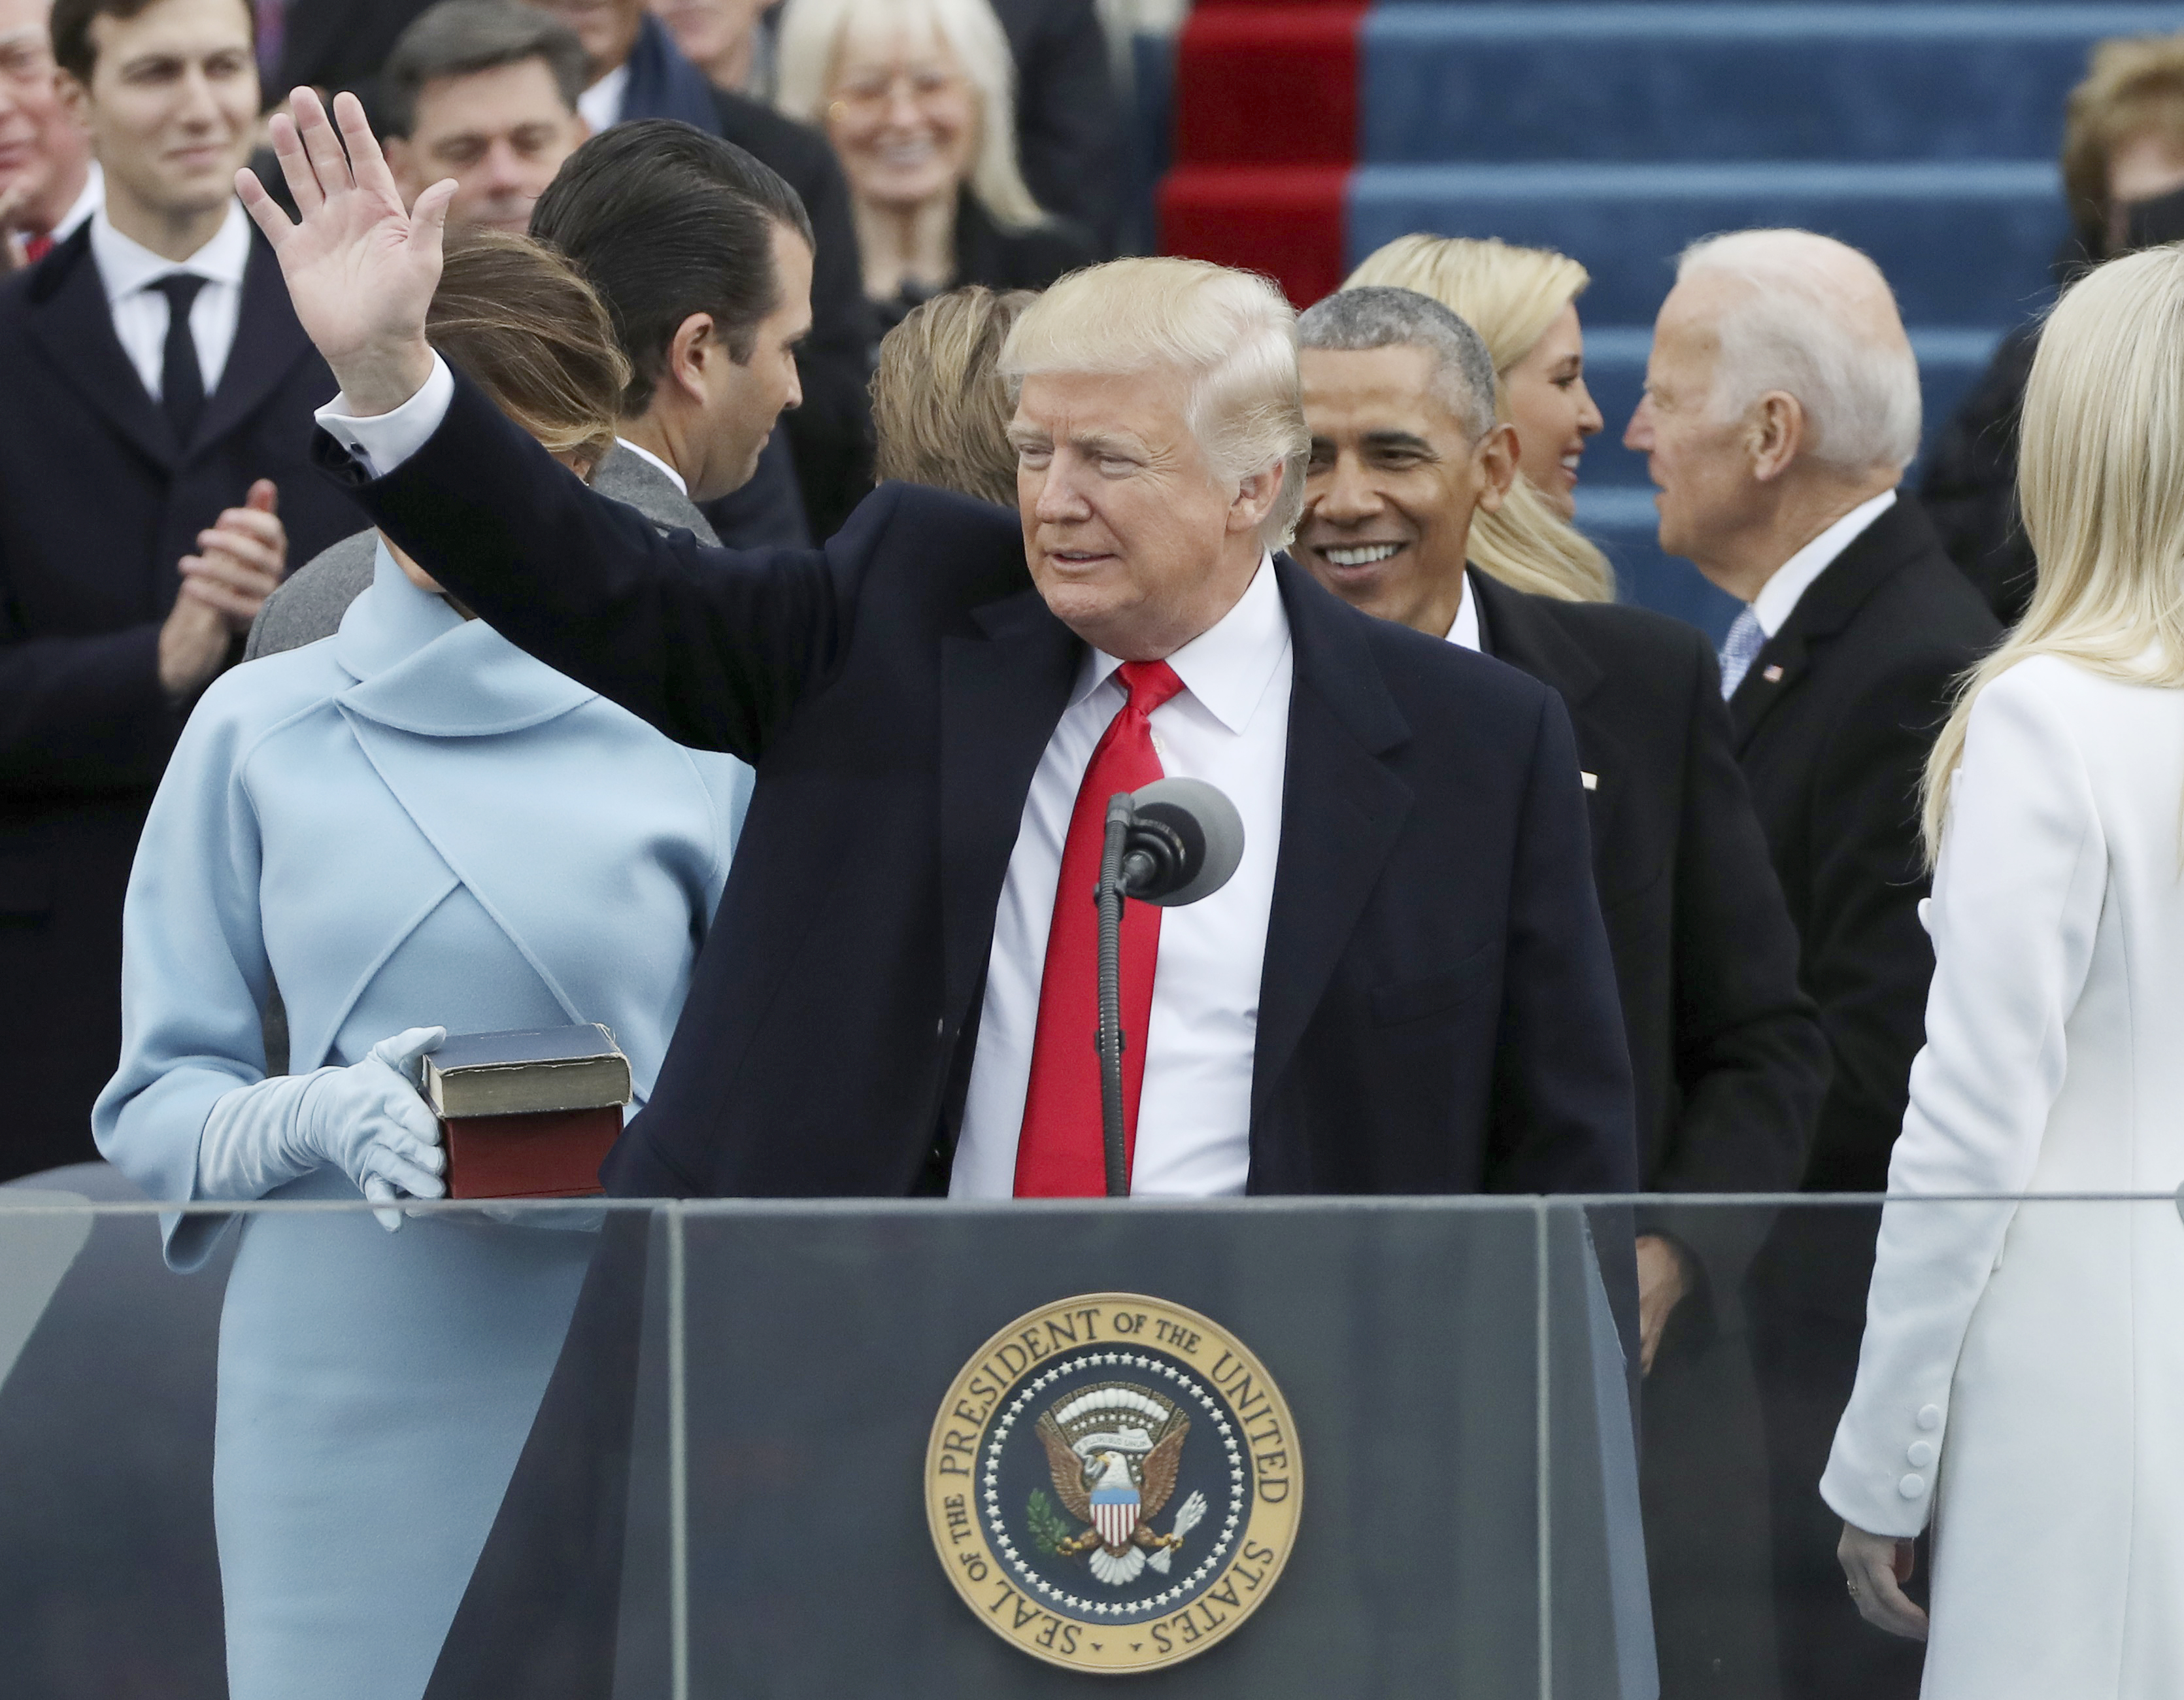 President Donald Trump waves after taking the oath at inauguration ceremonies swearing in Trump as the 45th president of the United States on the West front of the U.S. Capitol in Washington